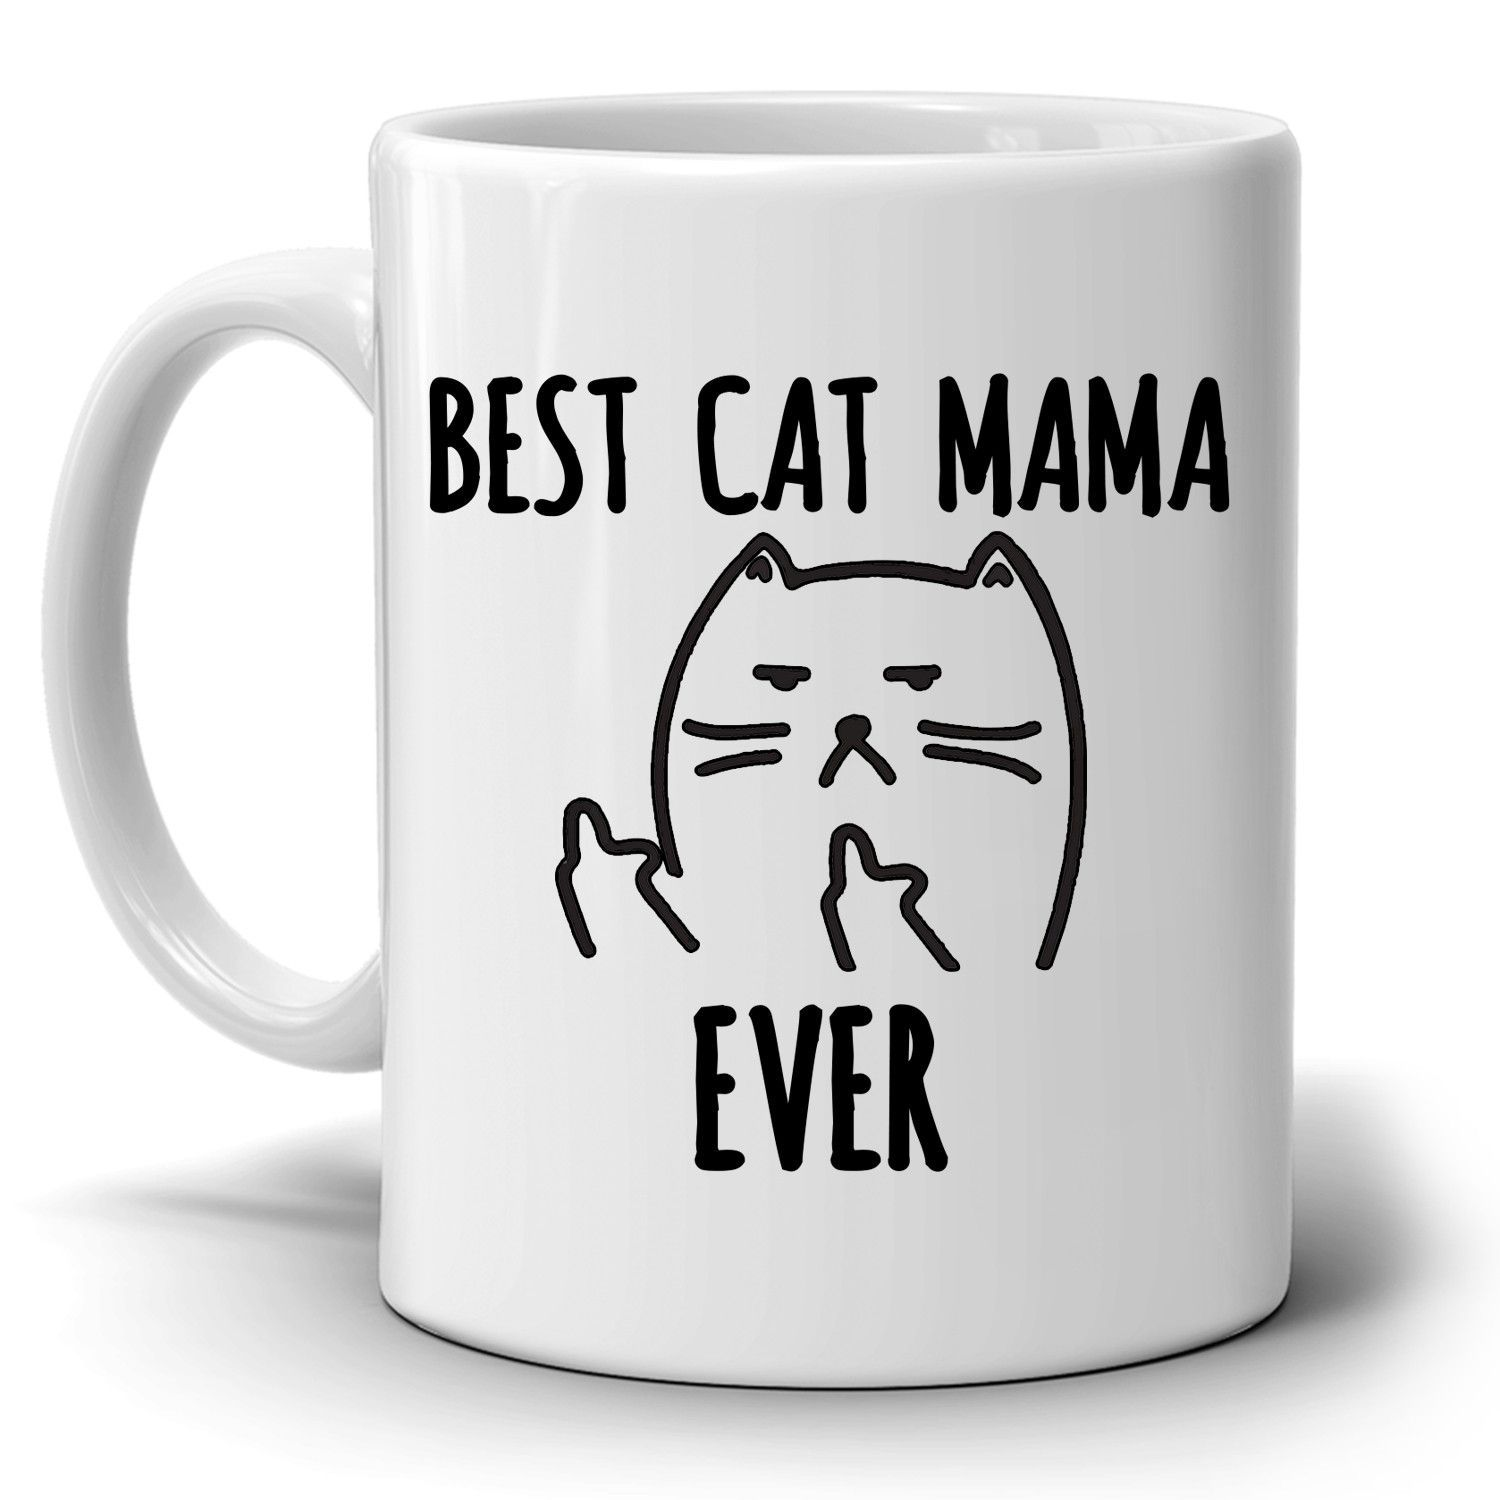 Funny Best Cat Mama Ever Coffee Mug, Unique Gifts for Mom